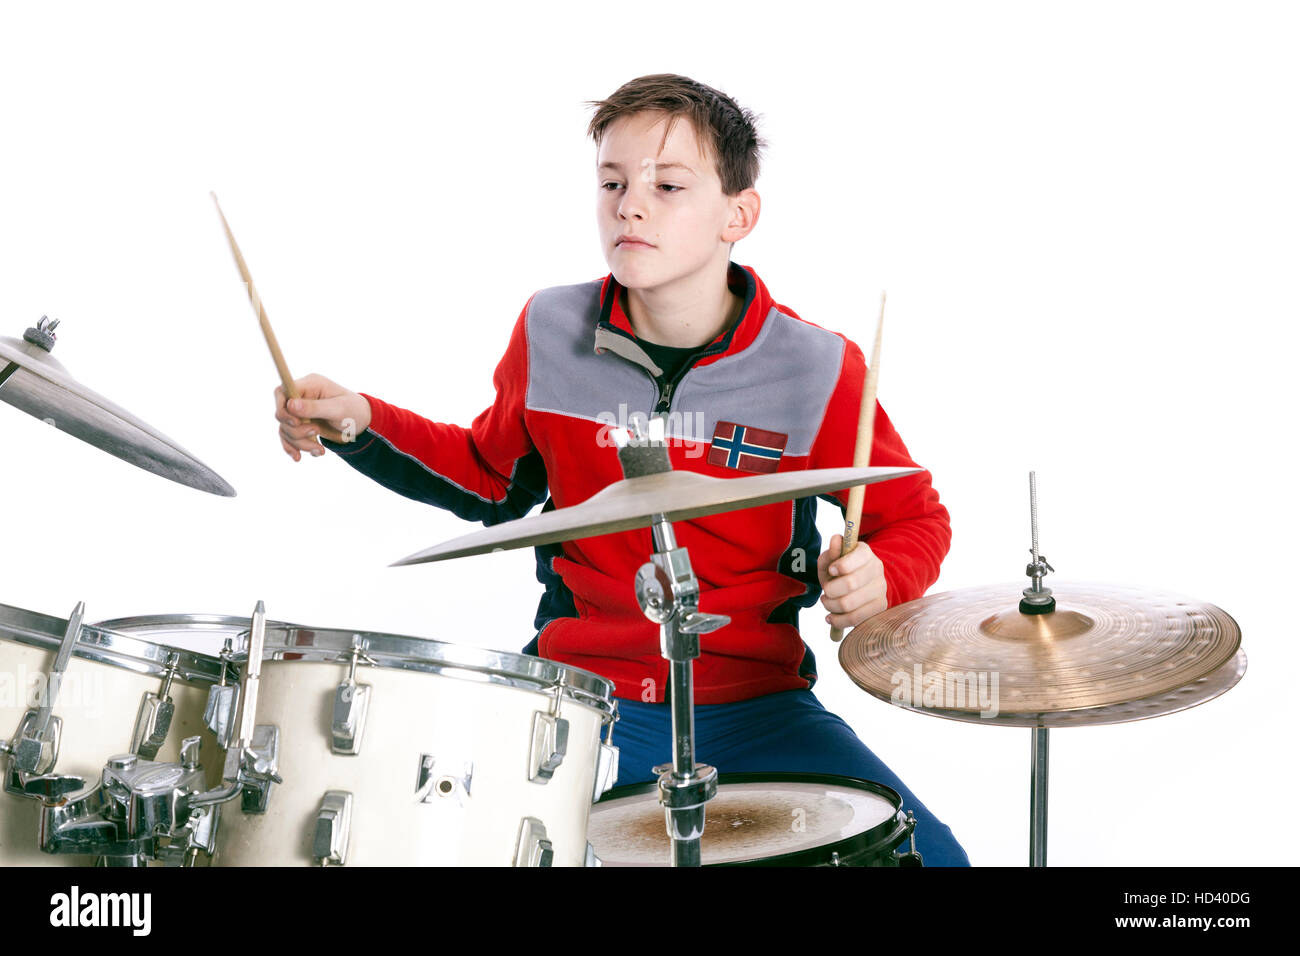 teenage caucasian boy plays drums in studio with white background - Stock Image